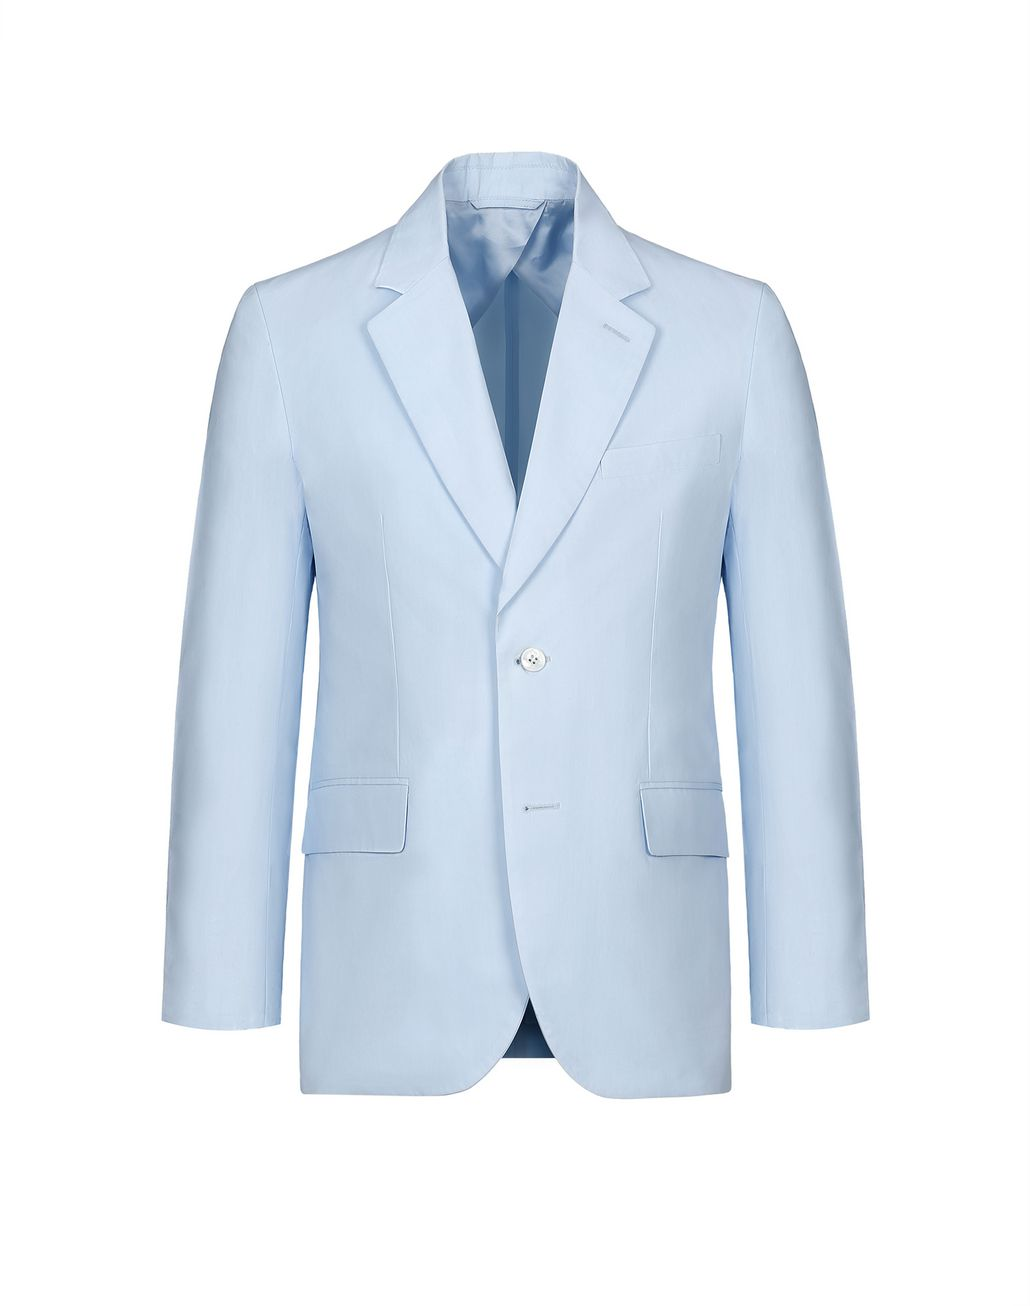 BRIONI Light Blue Deconstructed Jacket Jackets Man f